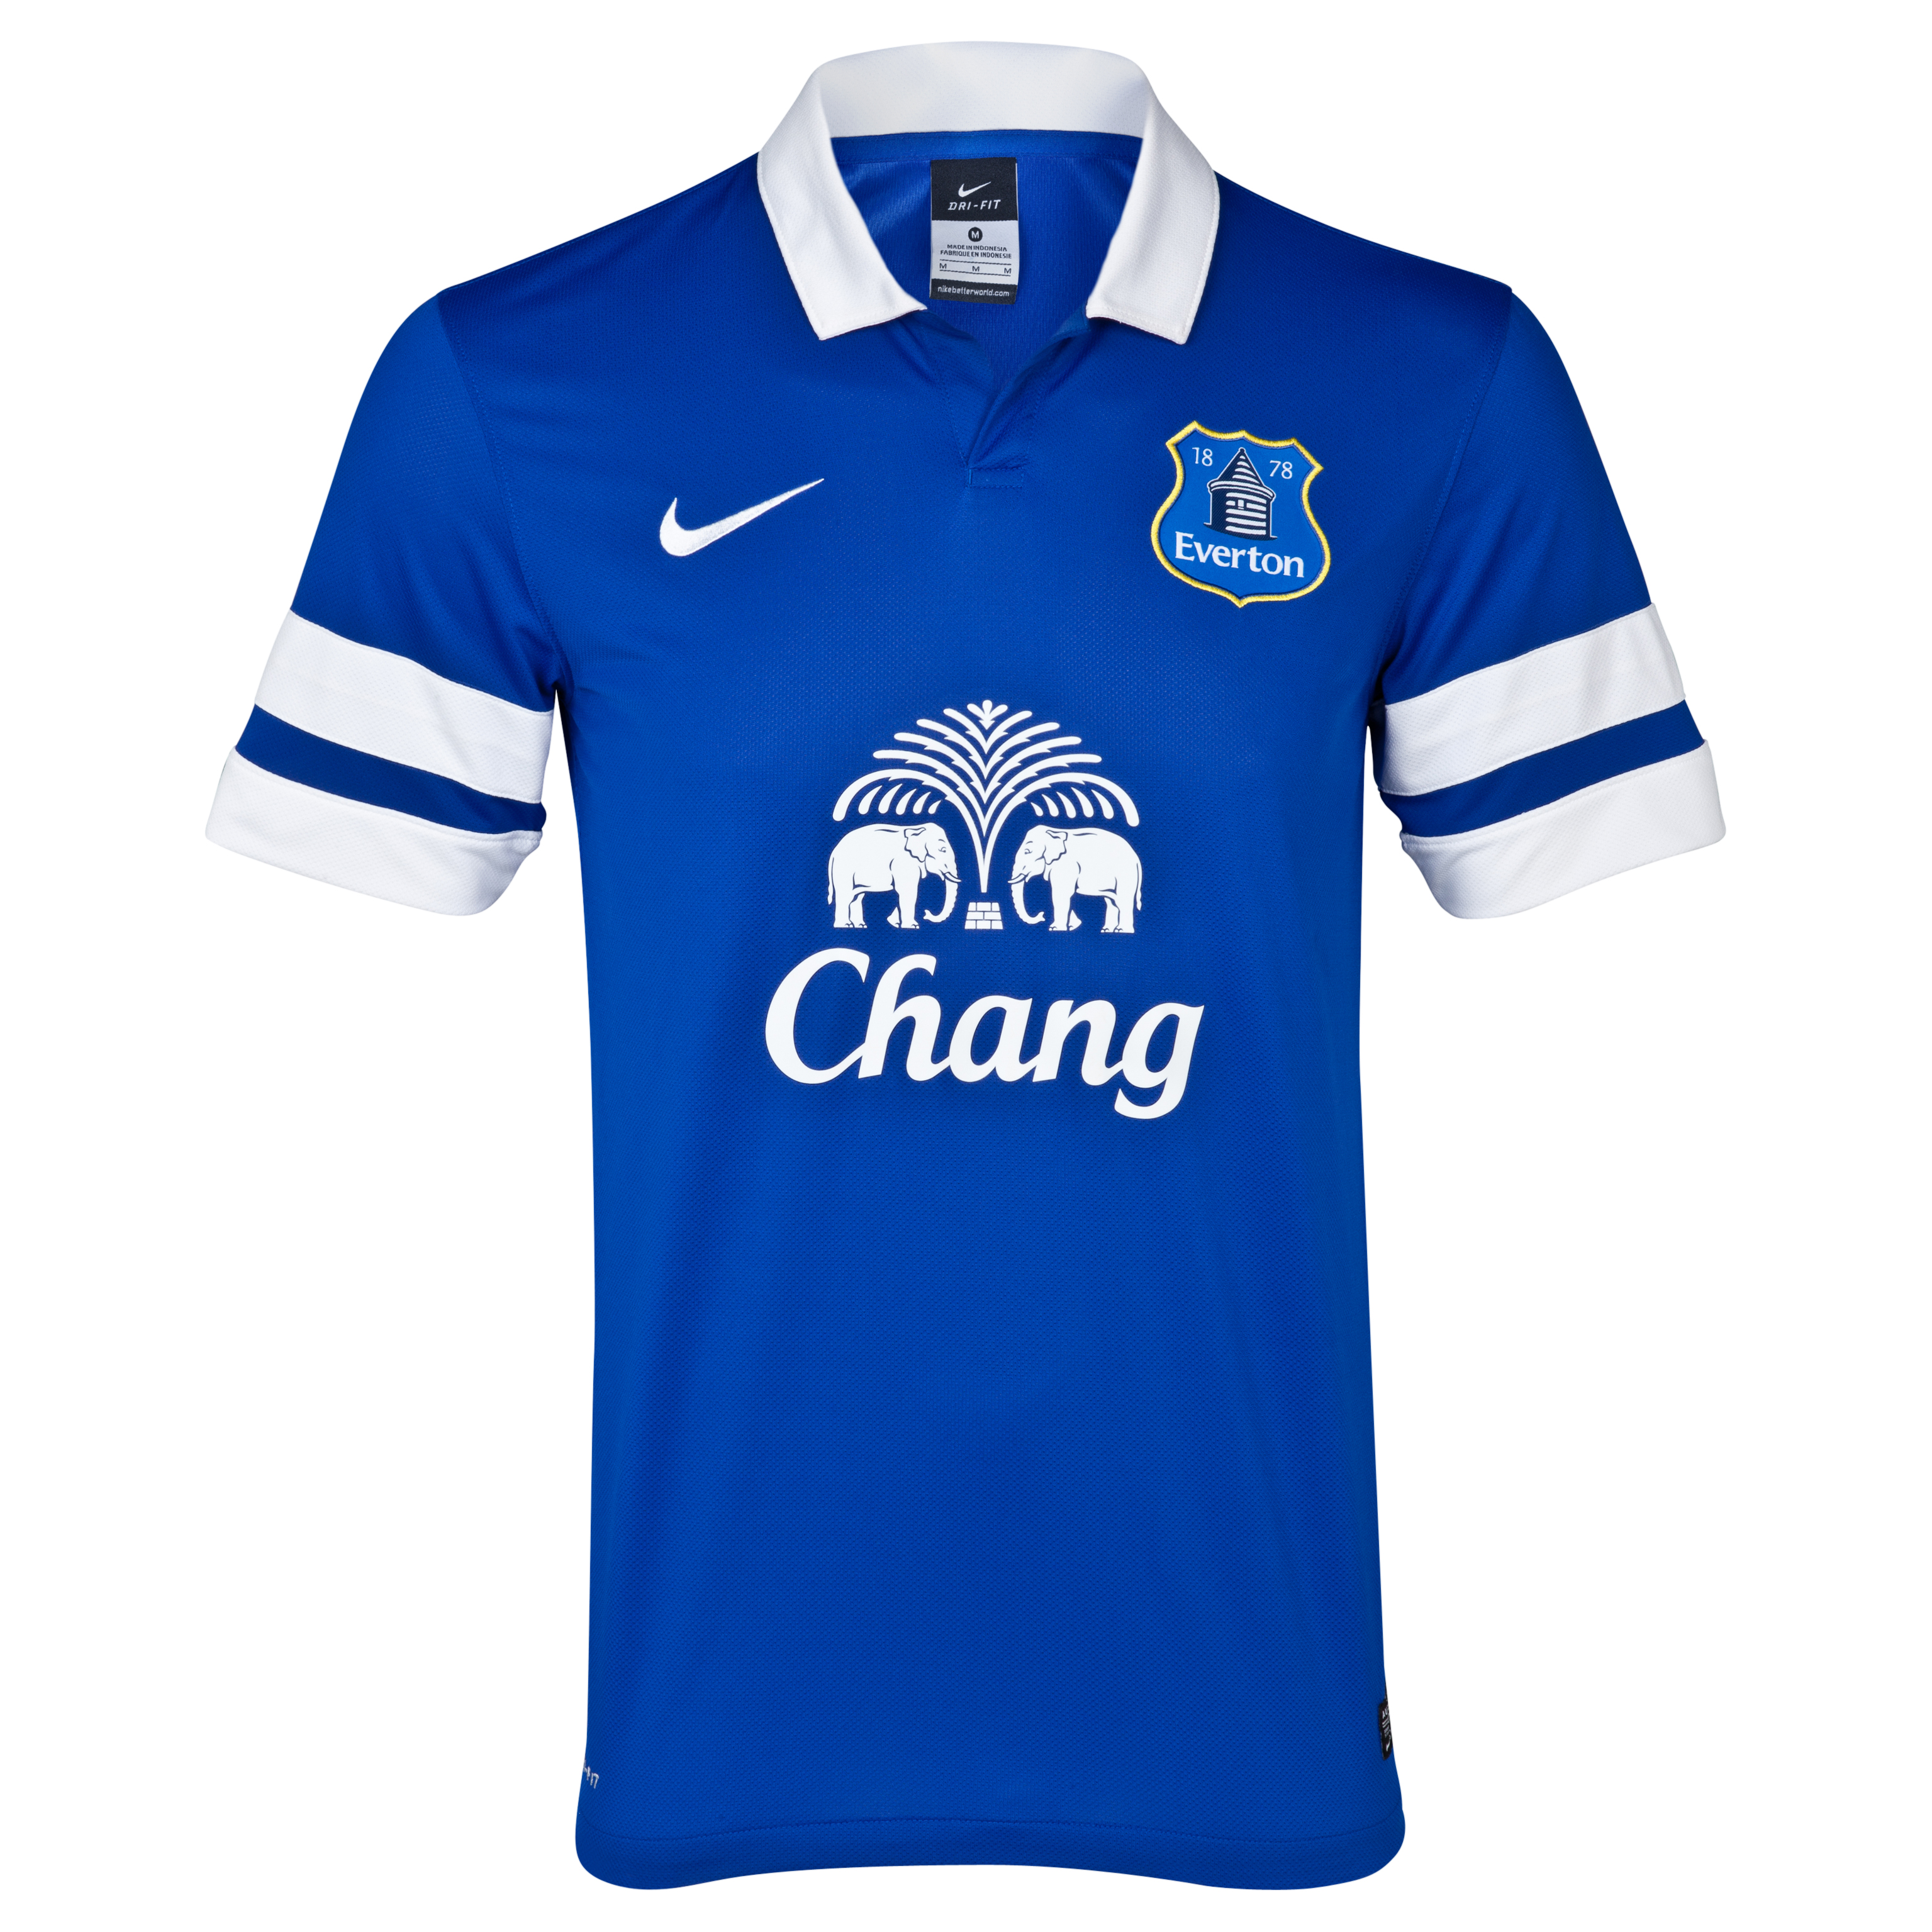 Everton Home Shirt 2013/14 Blue